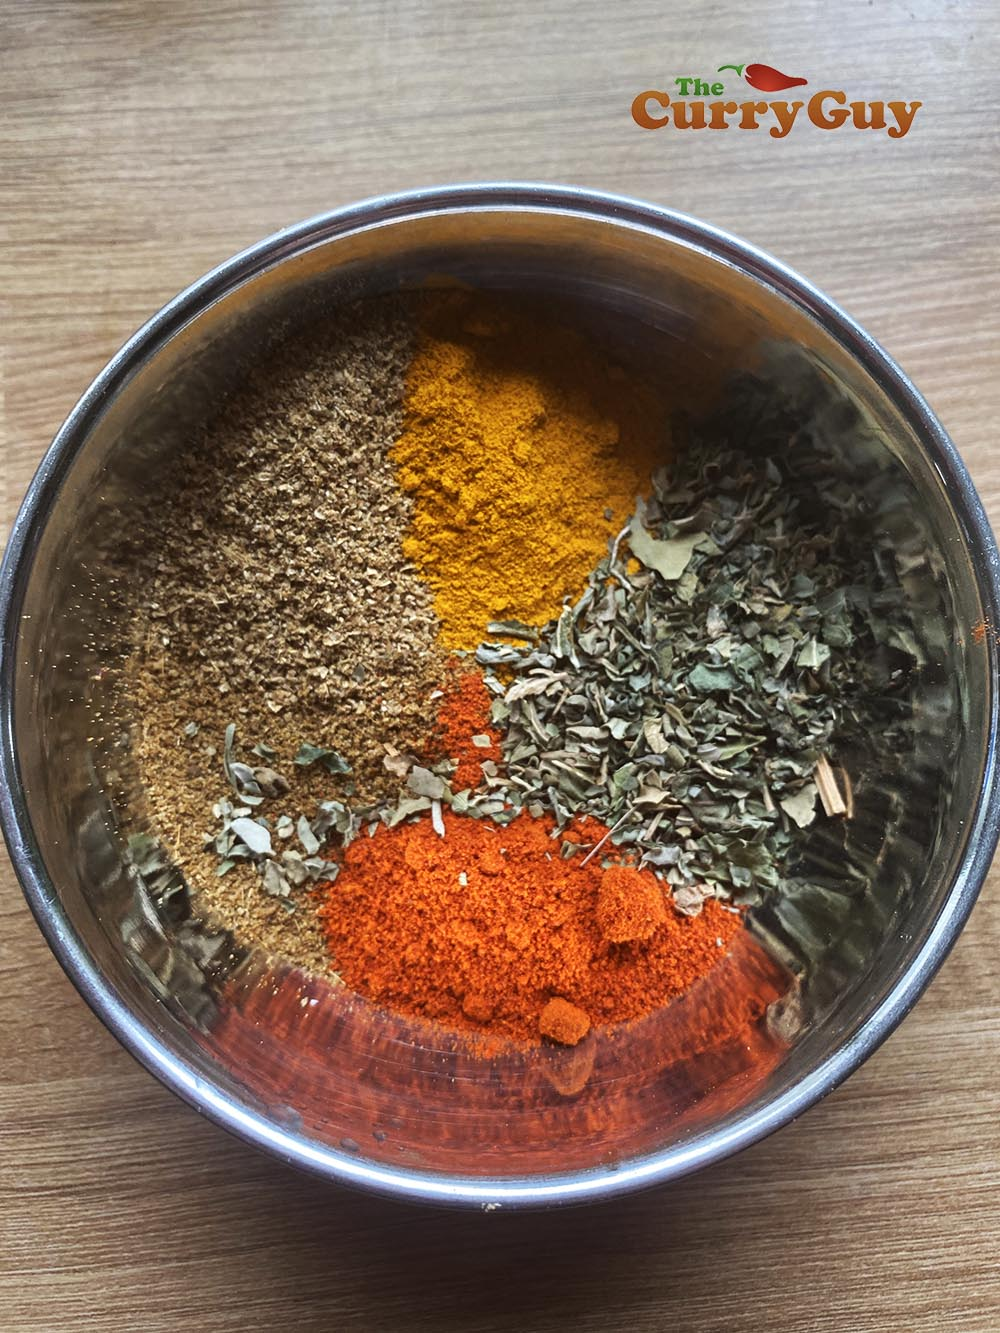 Spices for second marinade